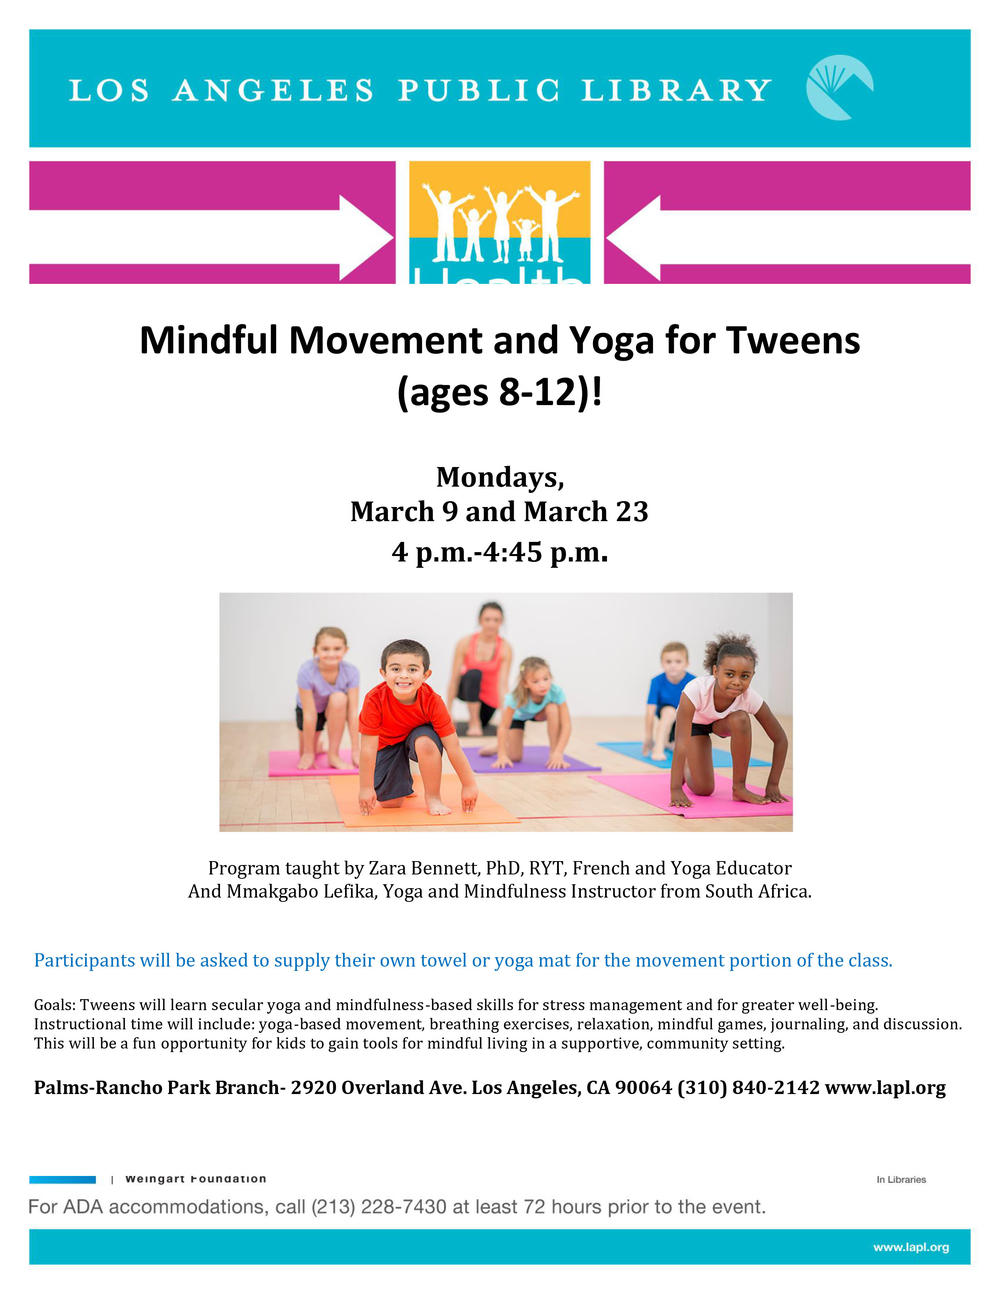 Mindfull Movement and Yoga for Tweens